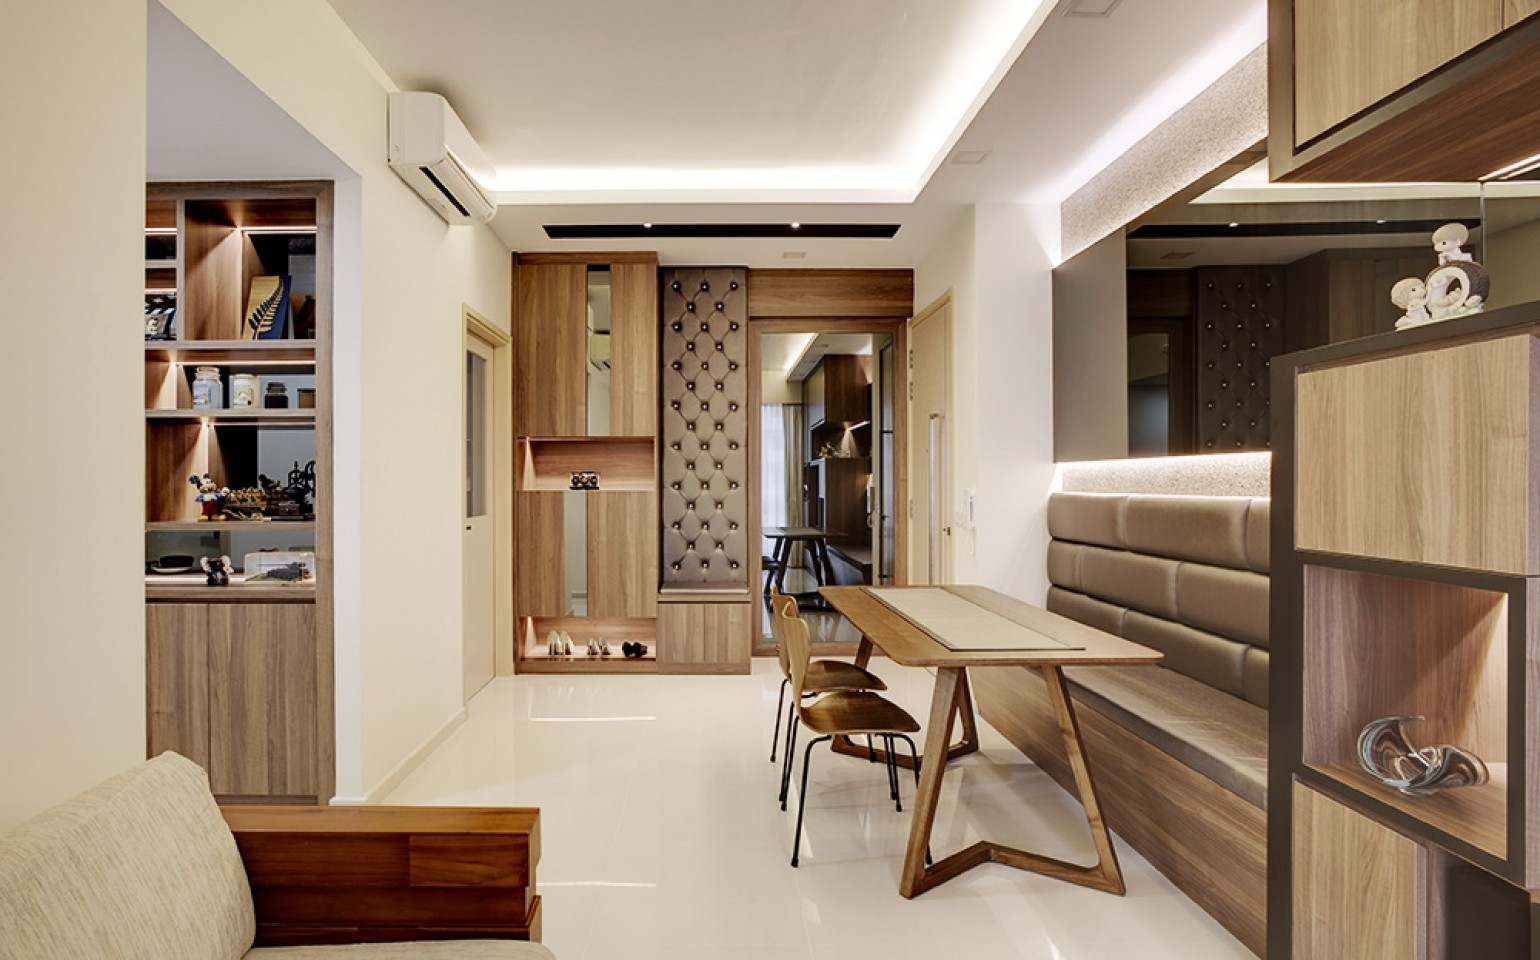 Home Sweet Home Renovation Singapore